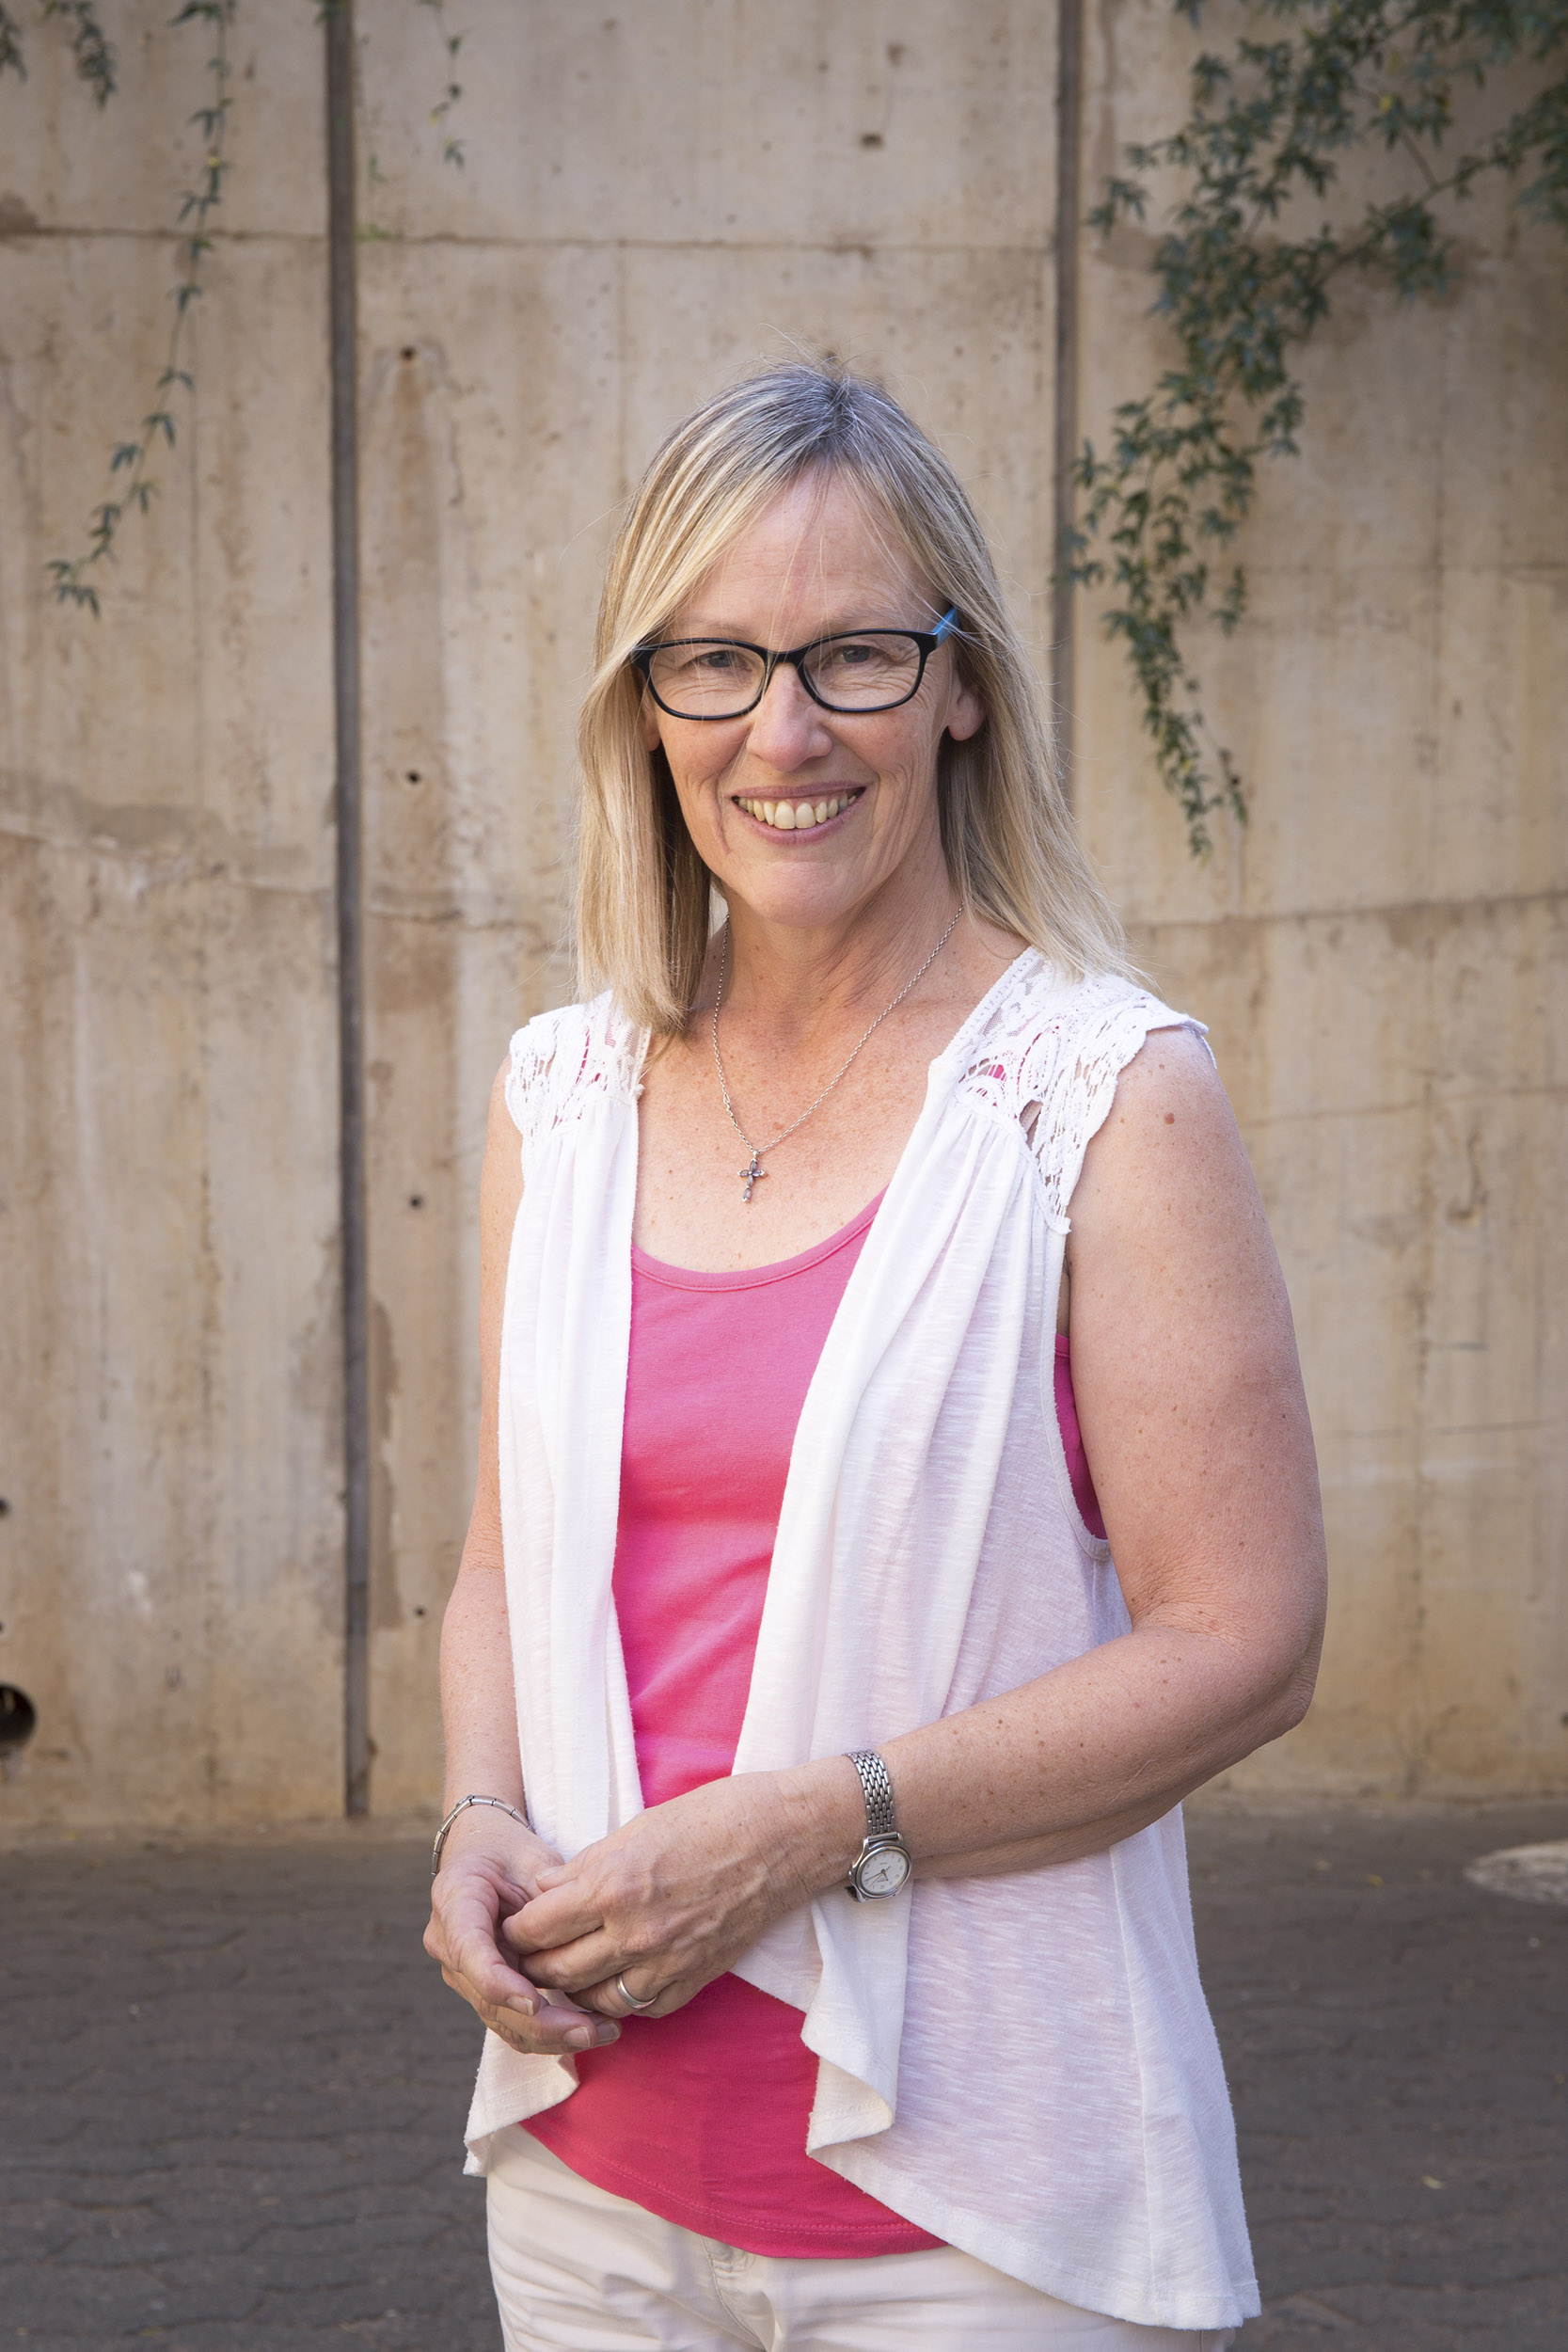 Prof Felicity is an expert in arbovirology in the Division of Virology and holds a South African Research Chair in Vector-borne and Zoonotic Pathogens Research.